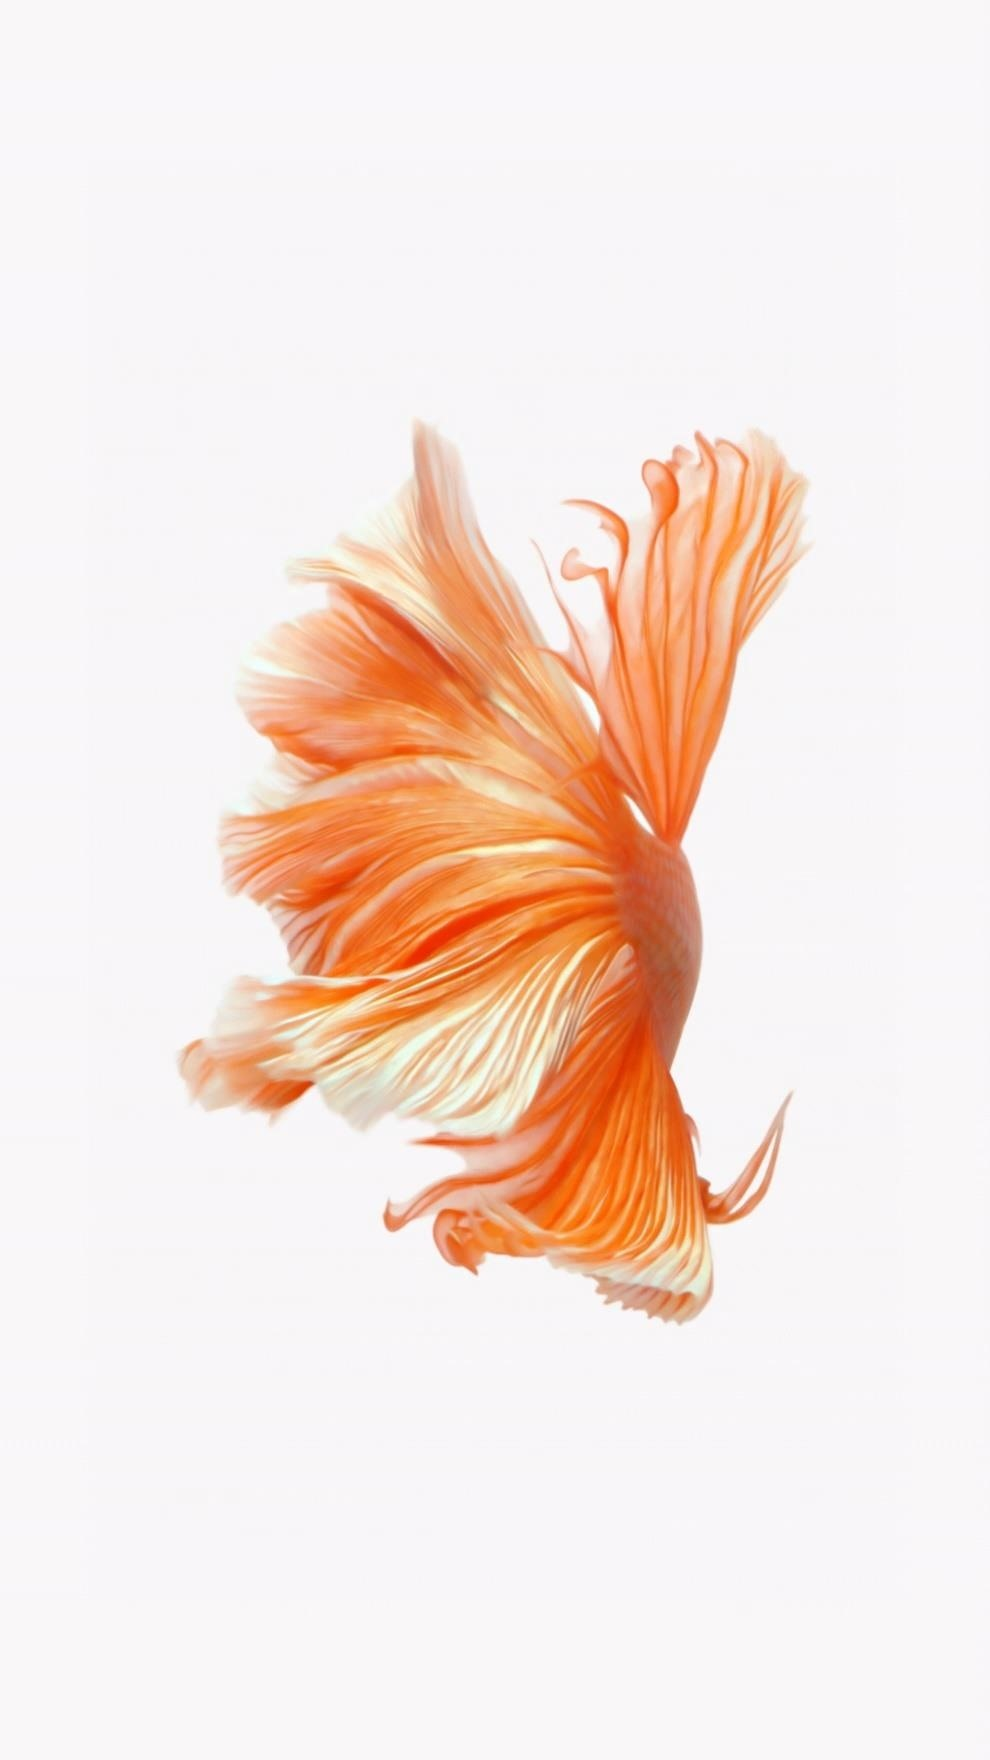 How To Get Apple's Live Fish Wallpapers Back On Your